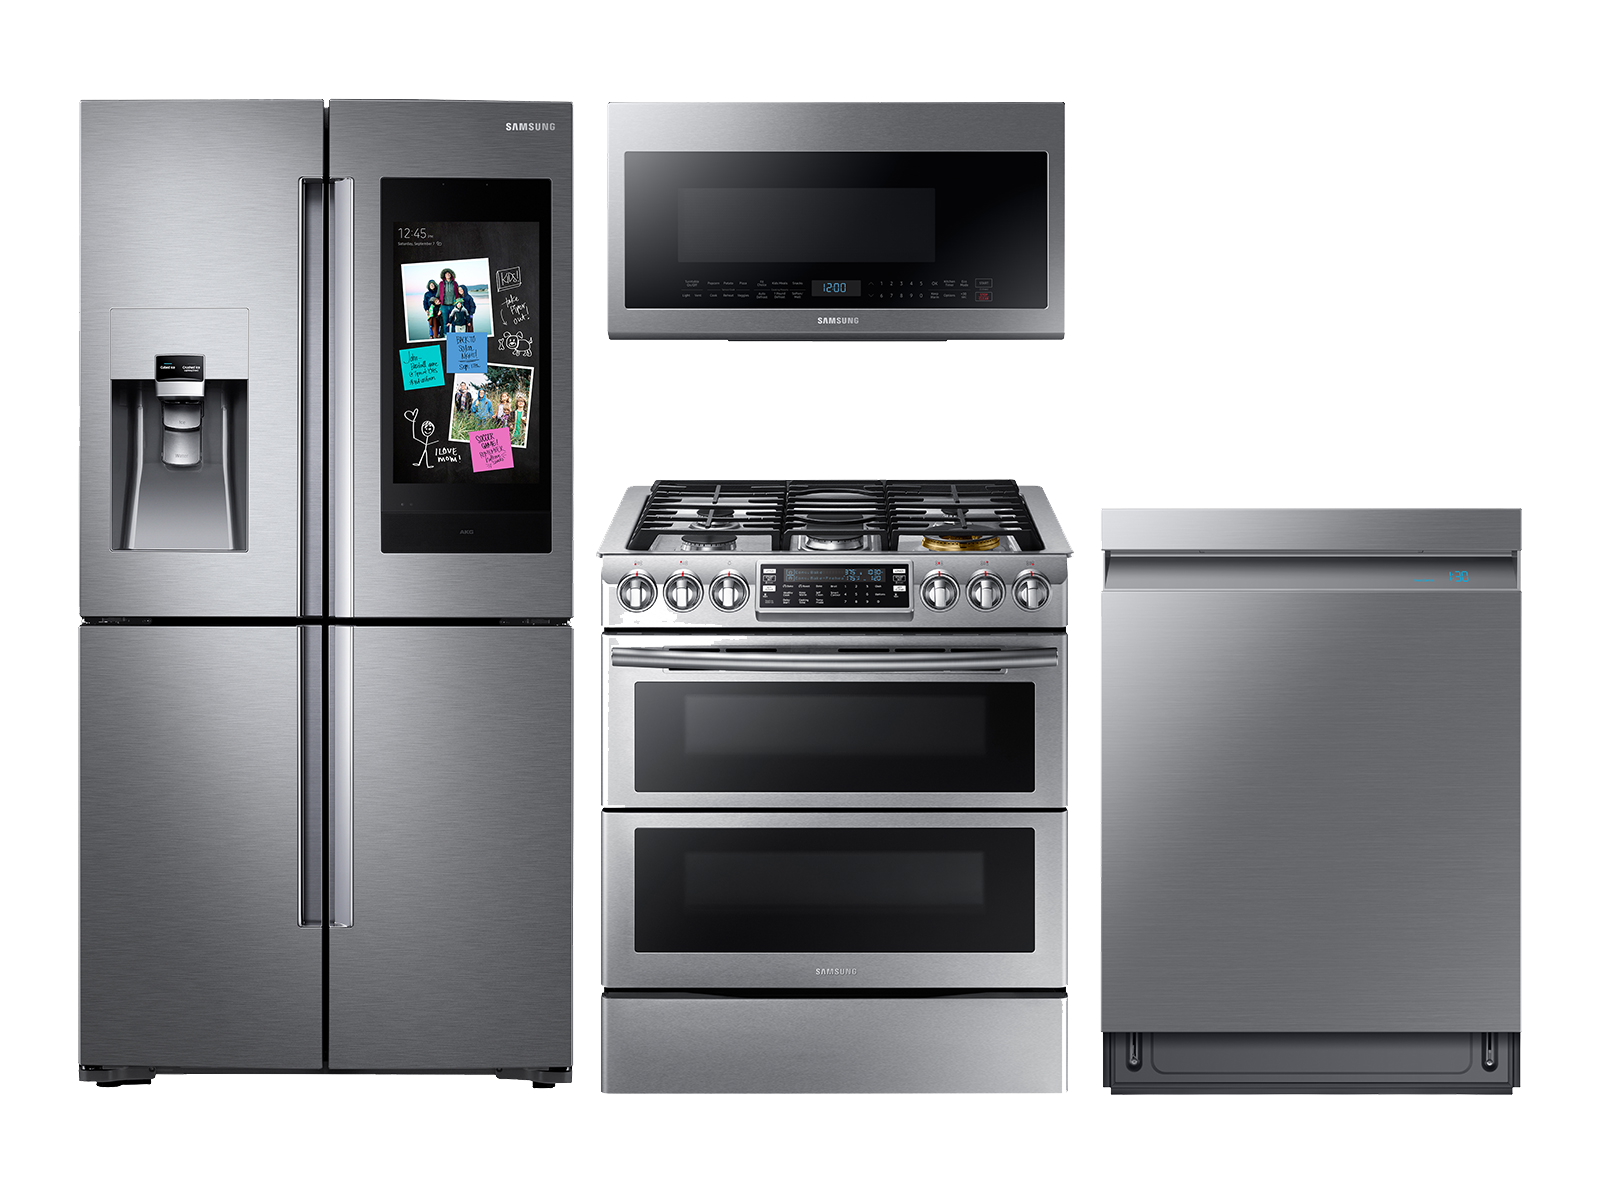 Samsung Family Hub Refrigerator + Slide-in Gas Range + Linear Wash Dishwasher + Microwave Kitchen Package in Stainless Steel